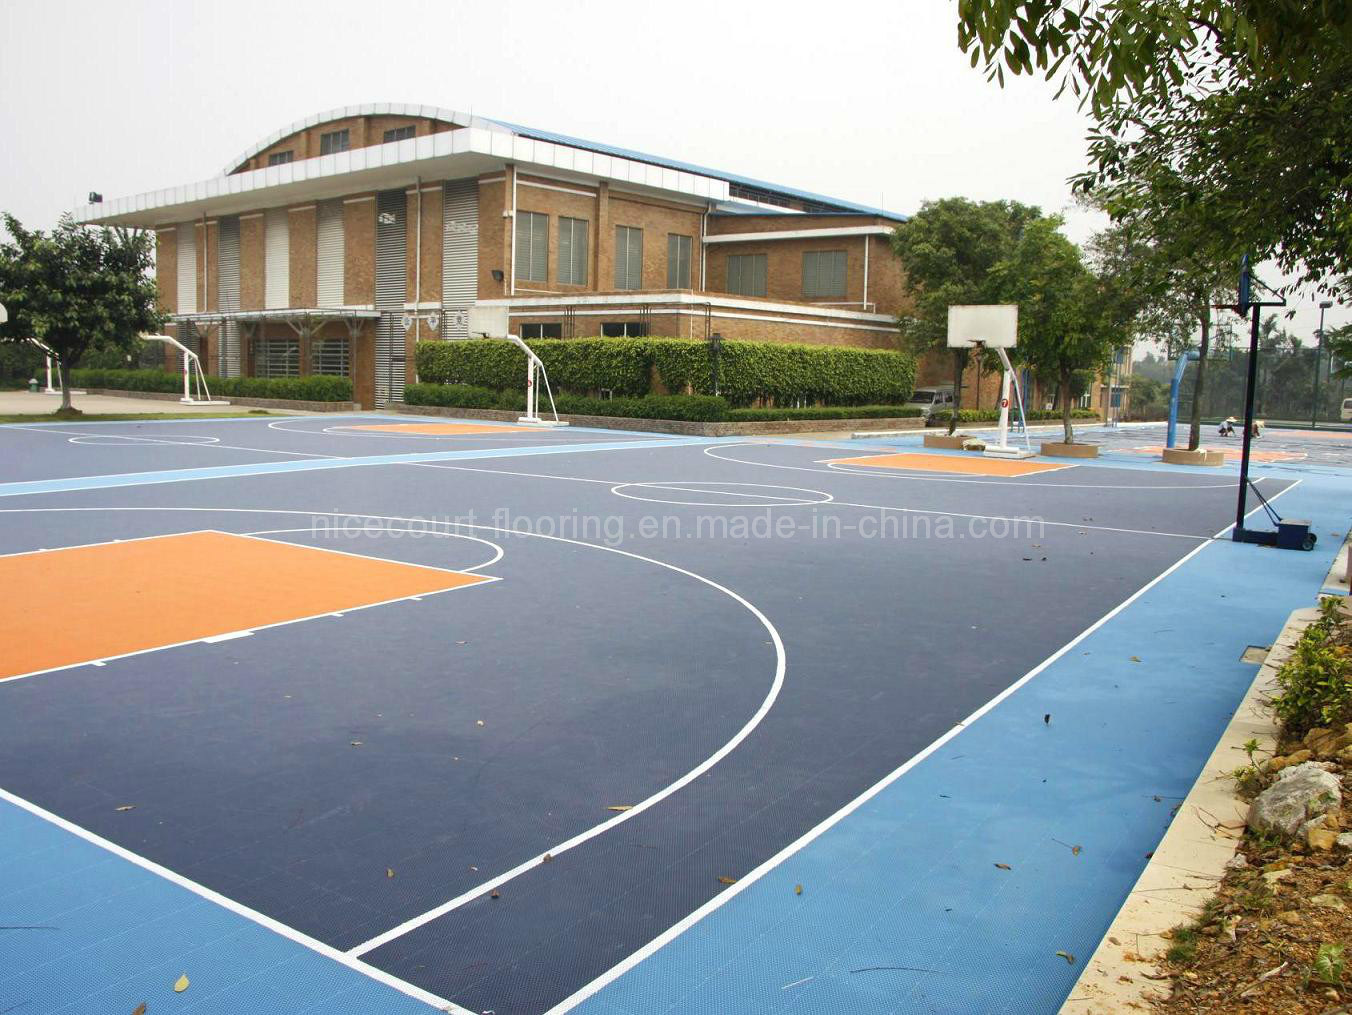 Home backyard basketball court flooring tiles quotes for Sport court pricing